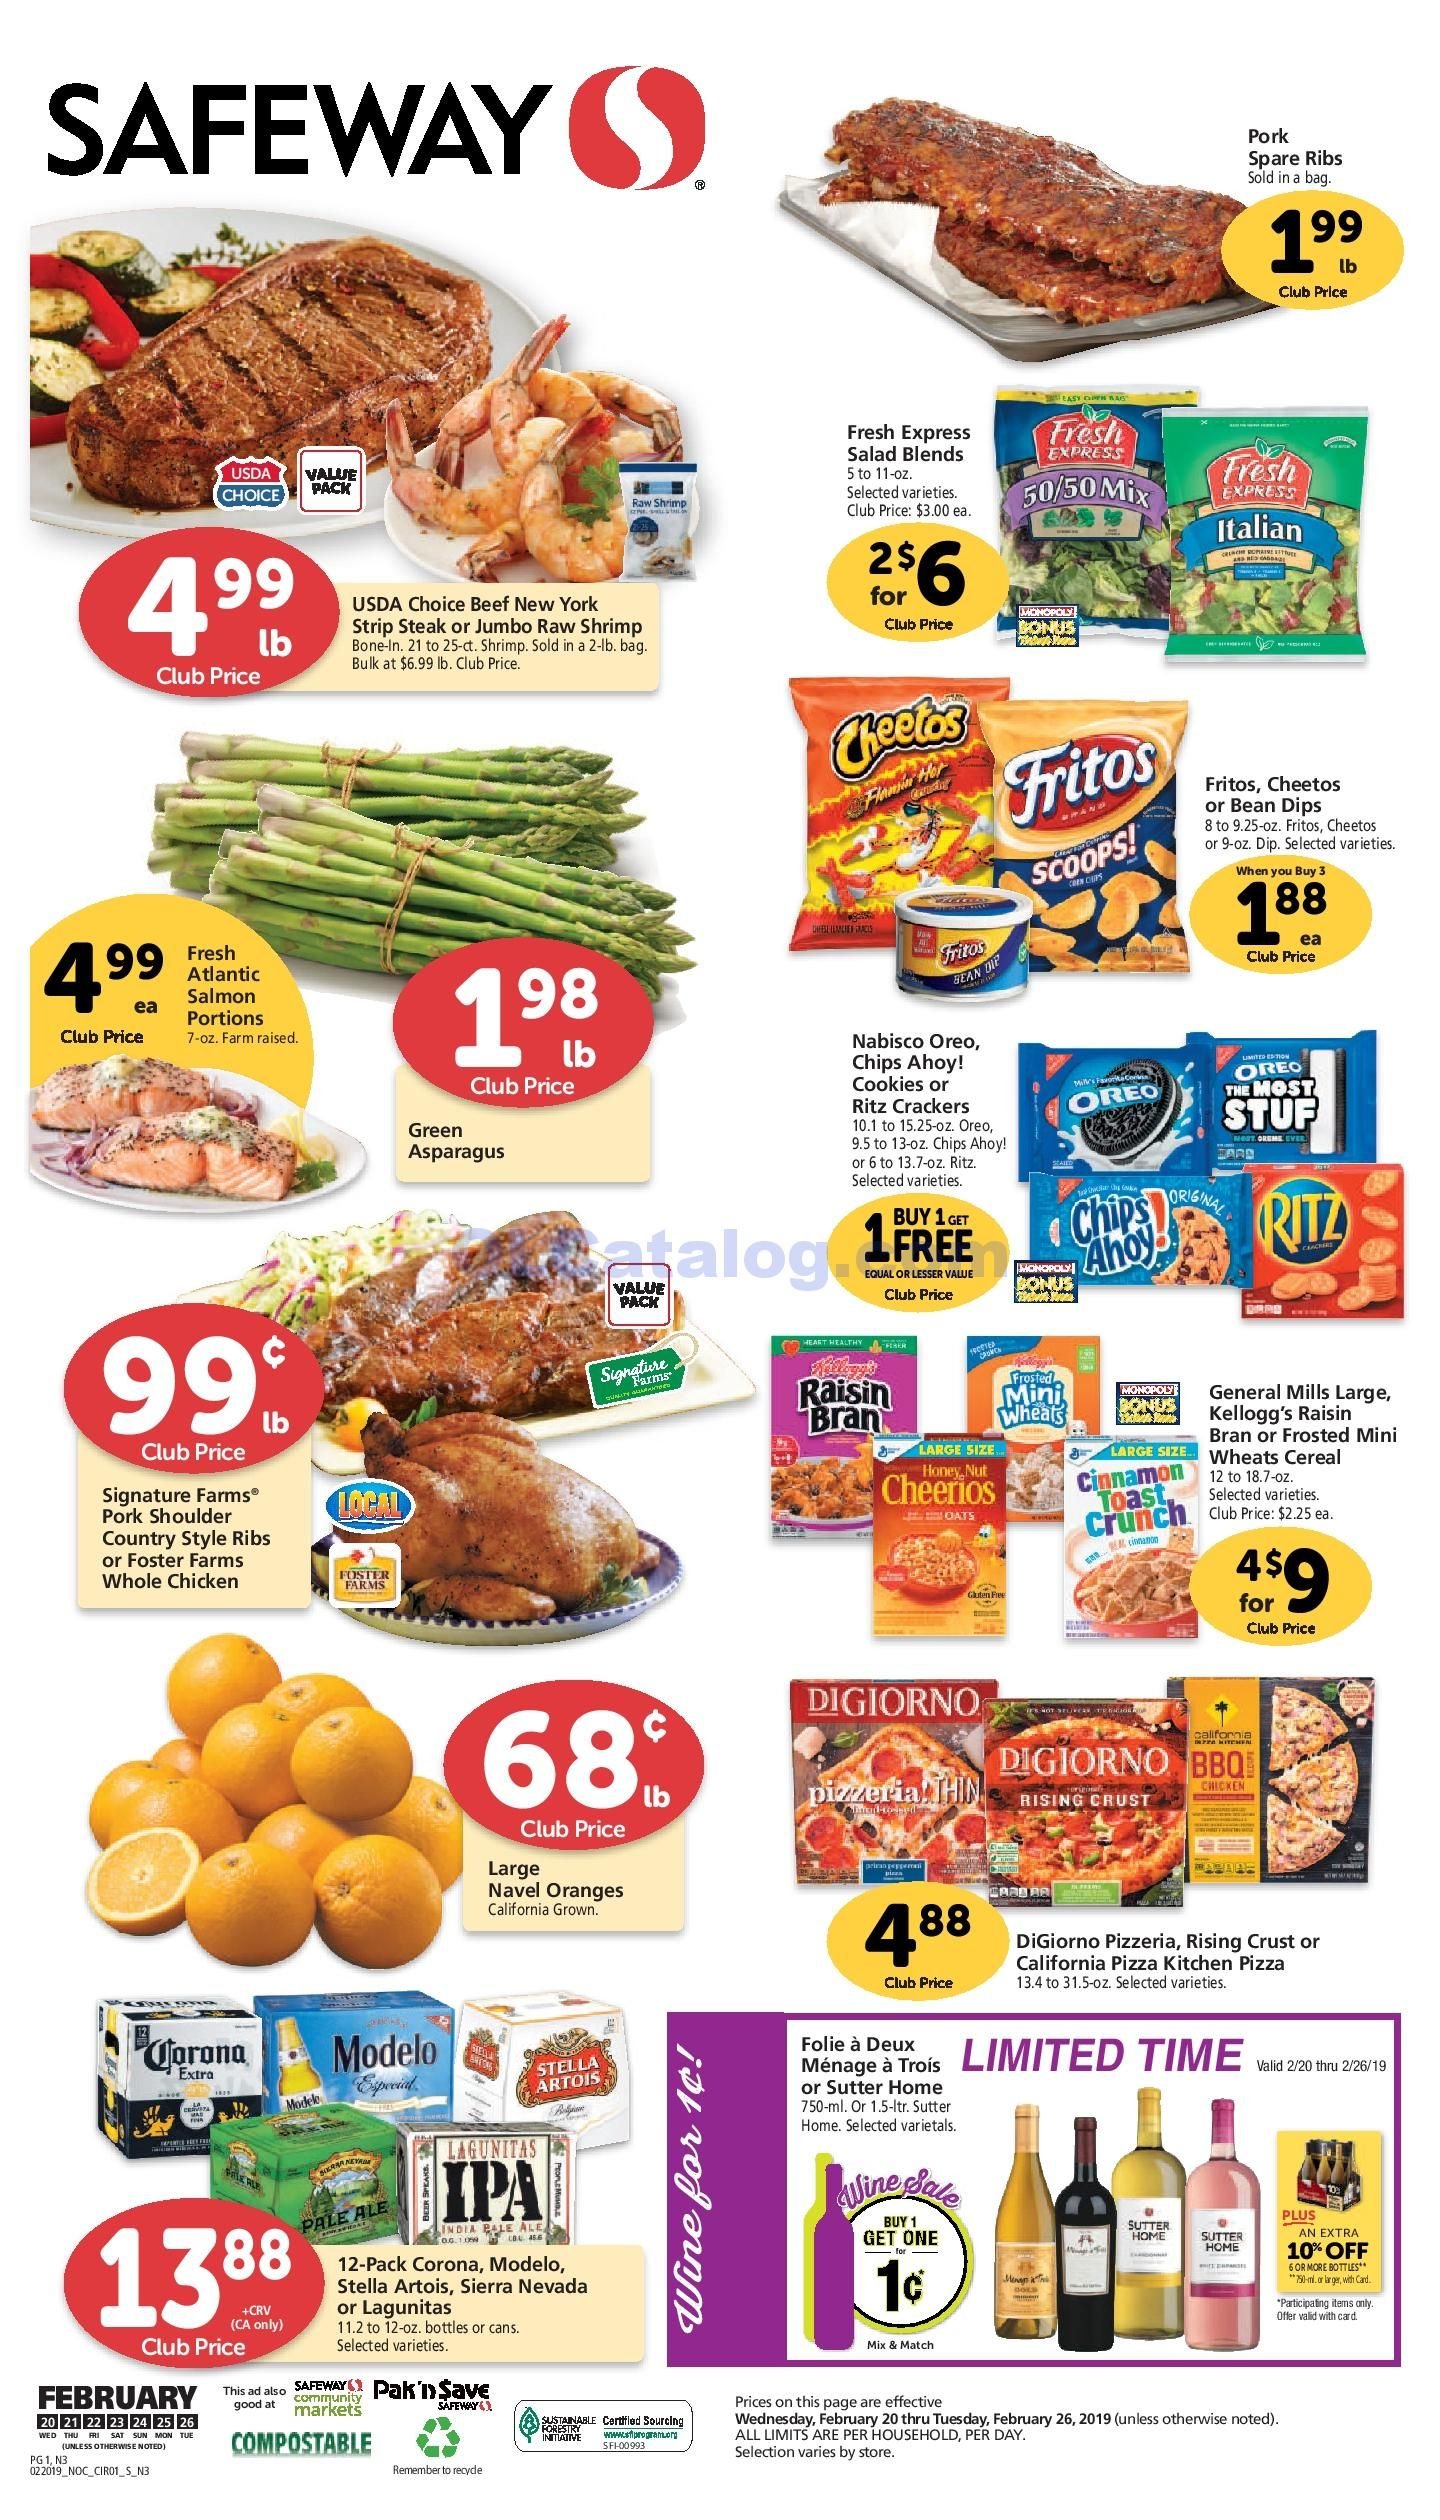 Safeway Weekly Ad 03/25/20 03/31/20 Sneak Peek Preview